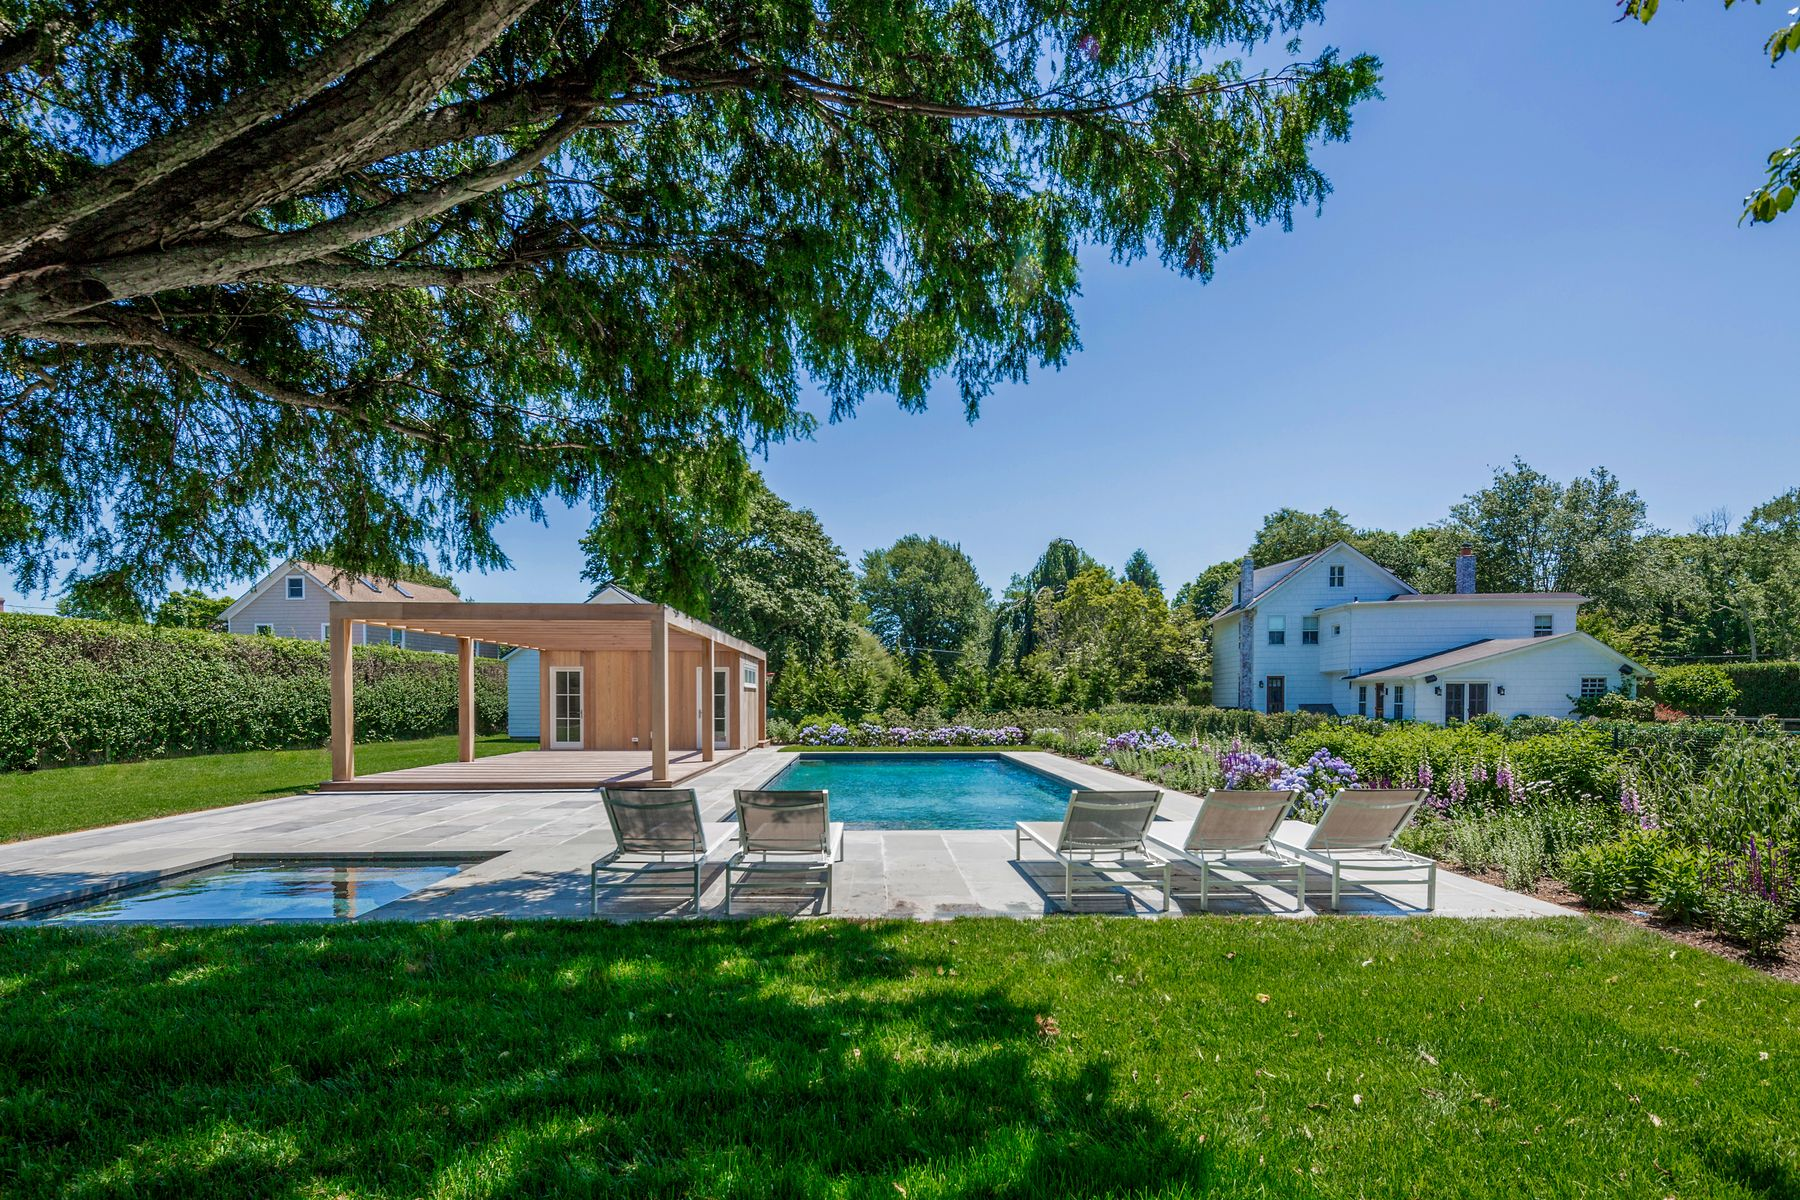 Single Family Homes for Active at LANES FARMHOUSE ON 1.0+ ACRES 66 Old Montauk Highway Amagansett, New York 11930 United States